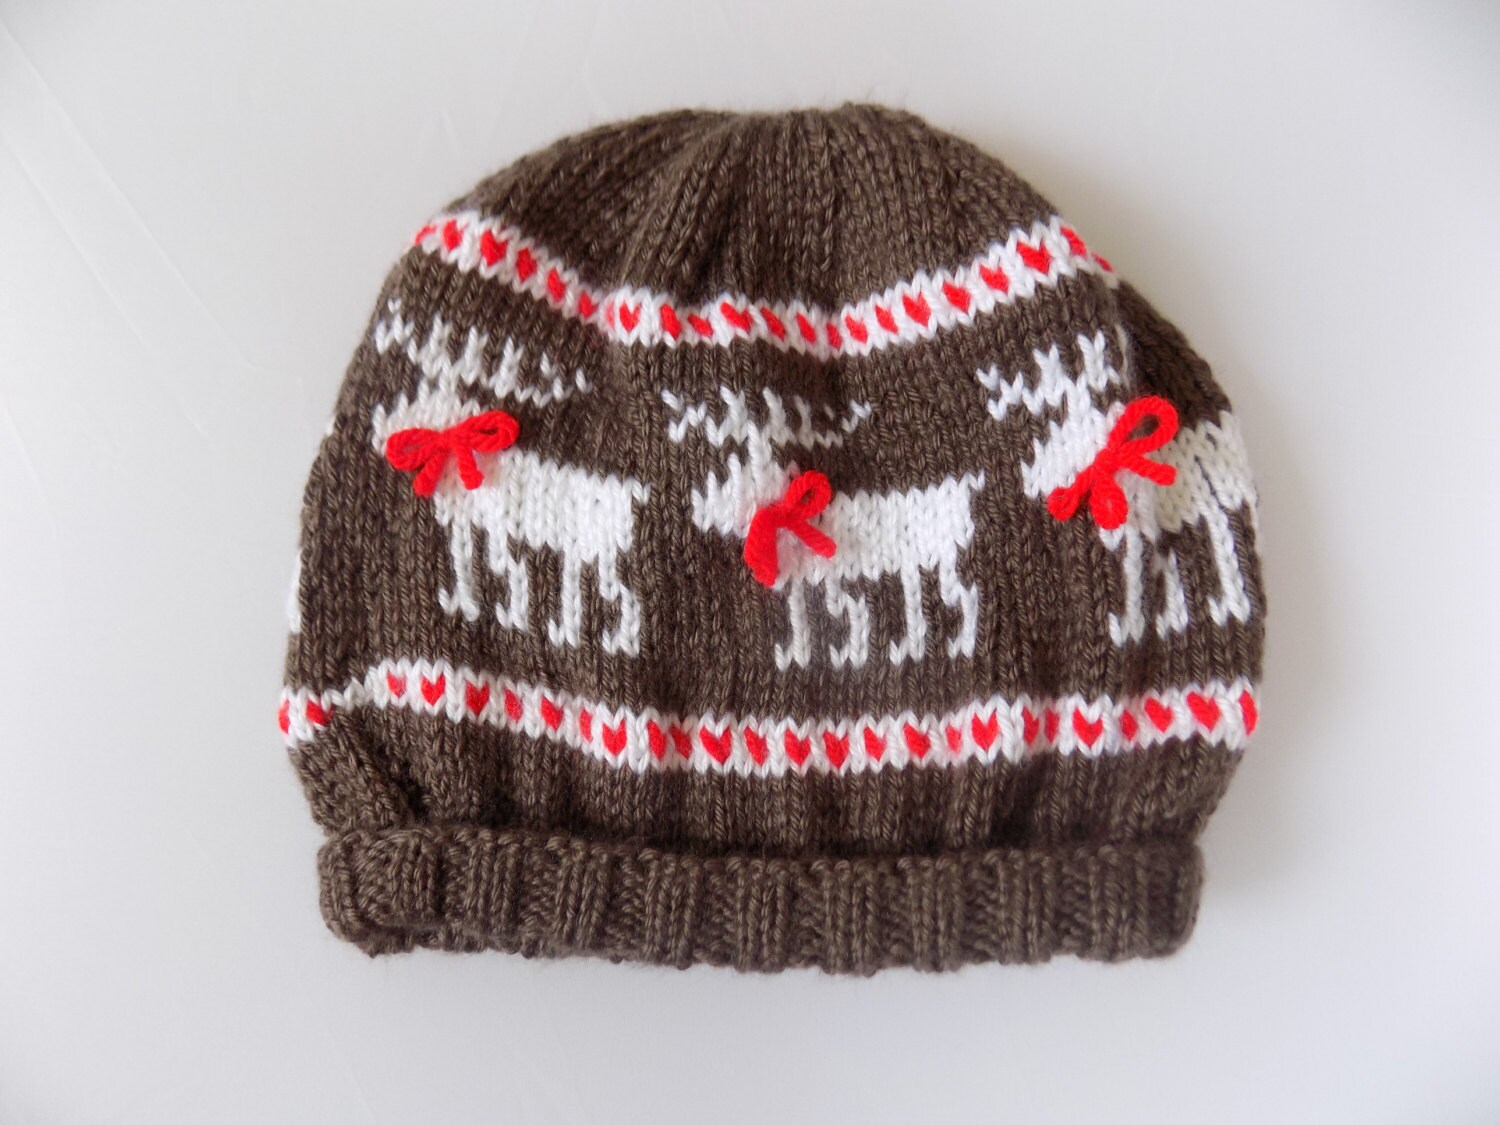 Knitting Pattern For Reindeer Hat : Knit Childs Reindeer Hat Reindeer Beanie Christmas Hat